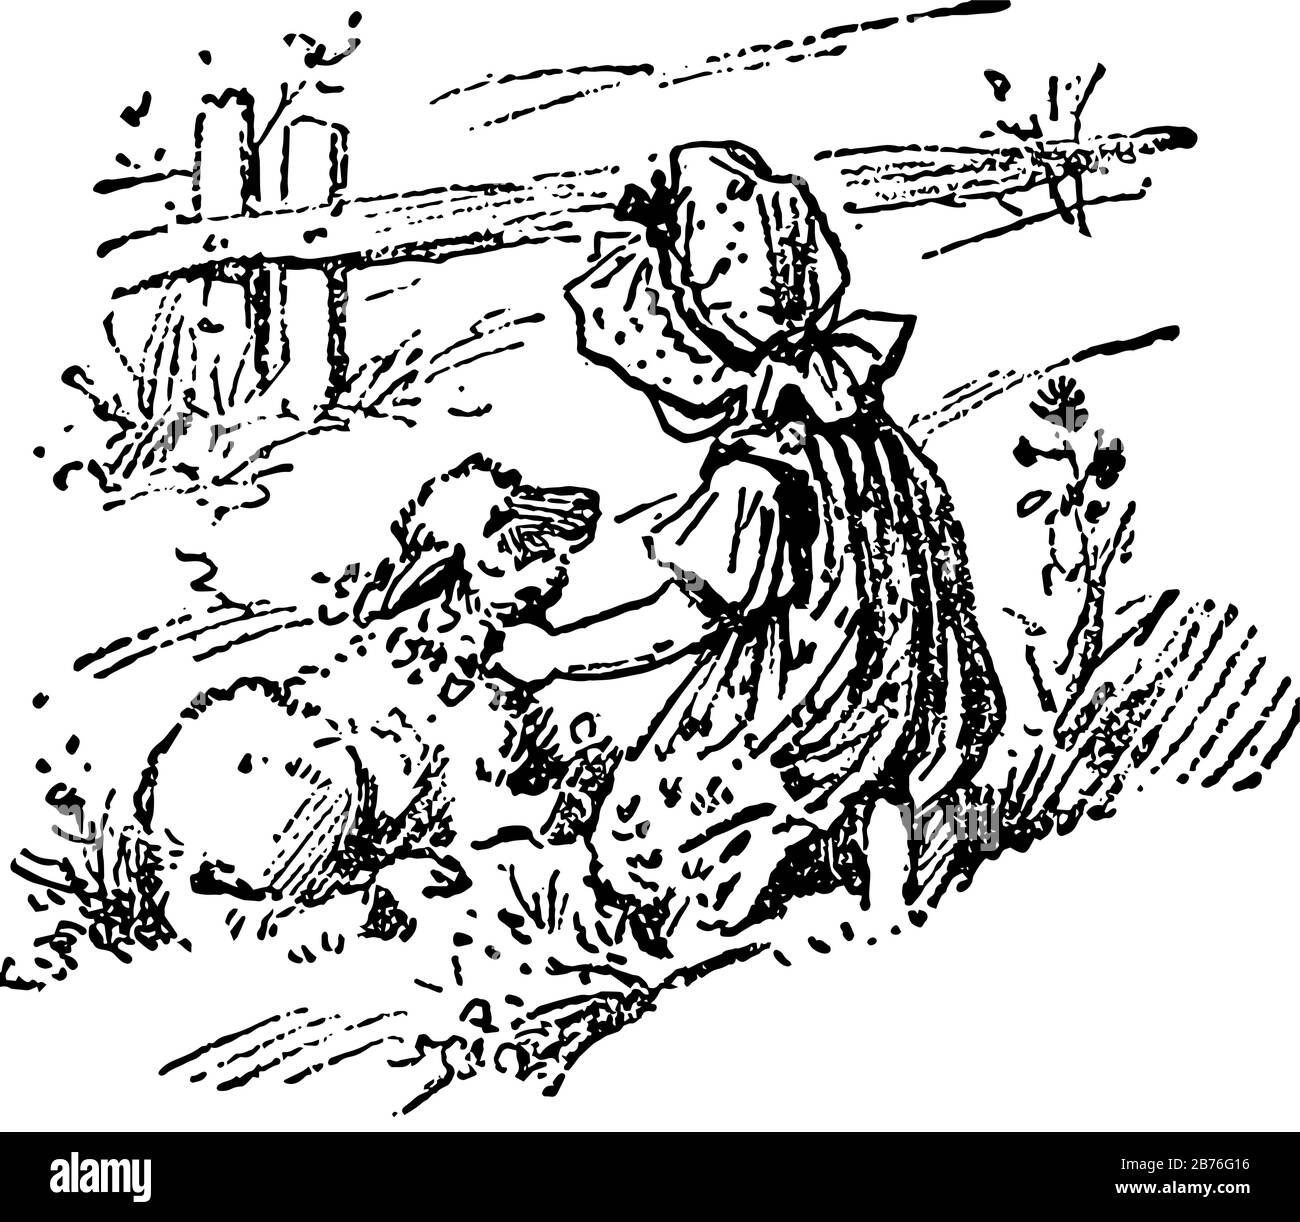 Mary Had A Little Lamb High Resolution Stock Photography And Images Alamy